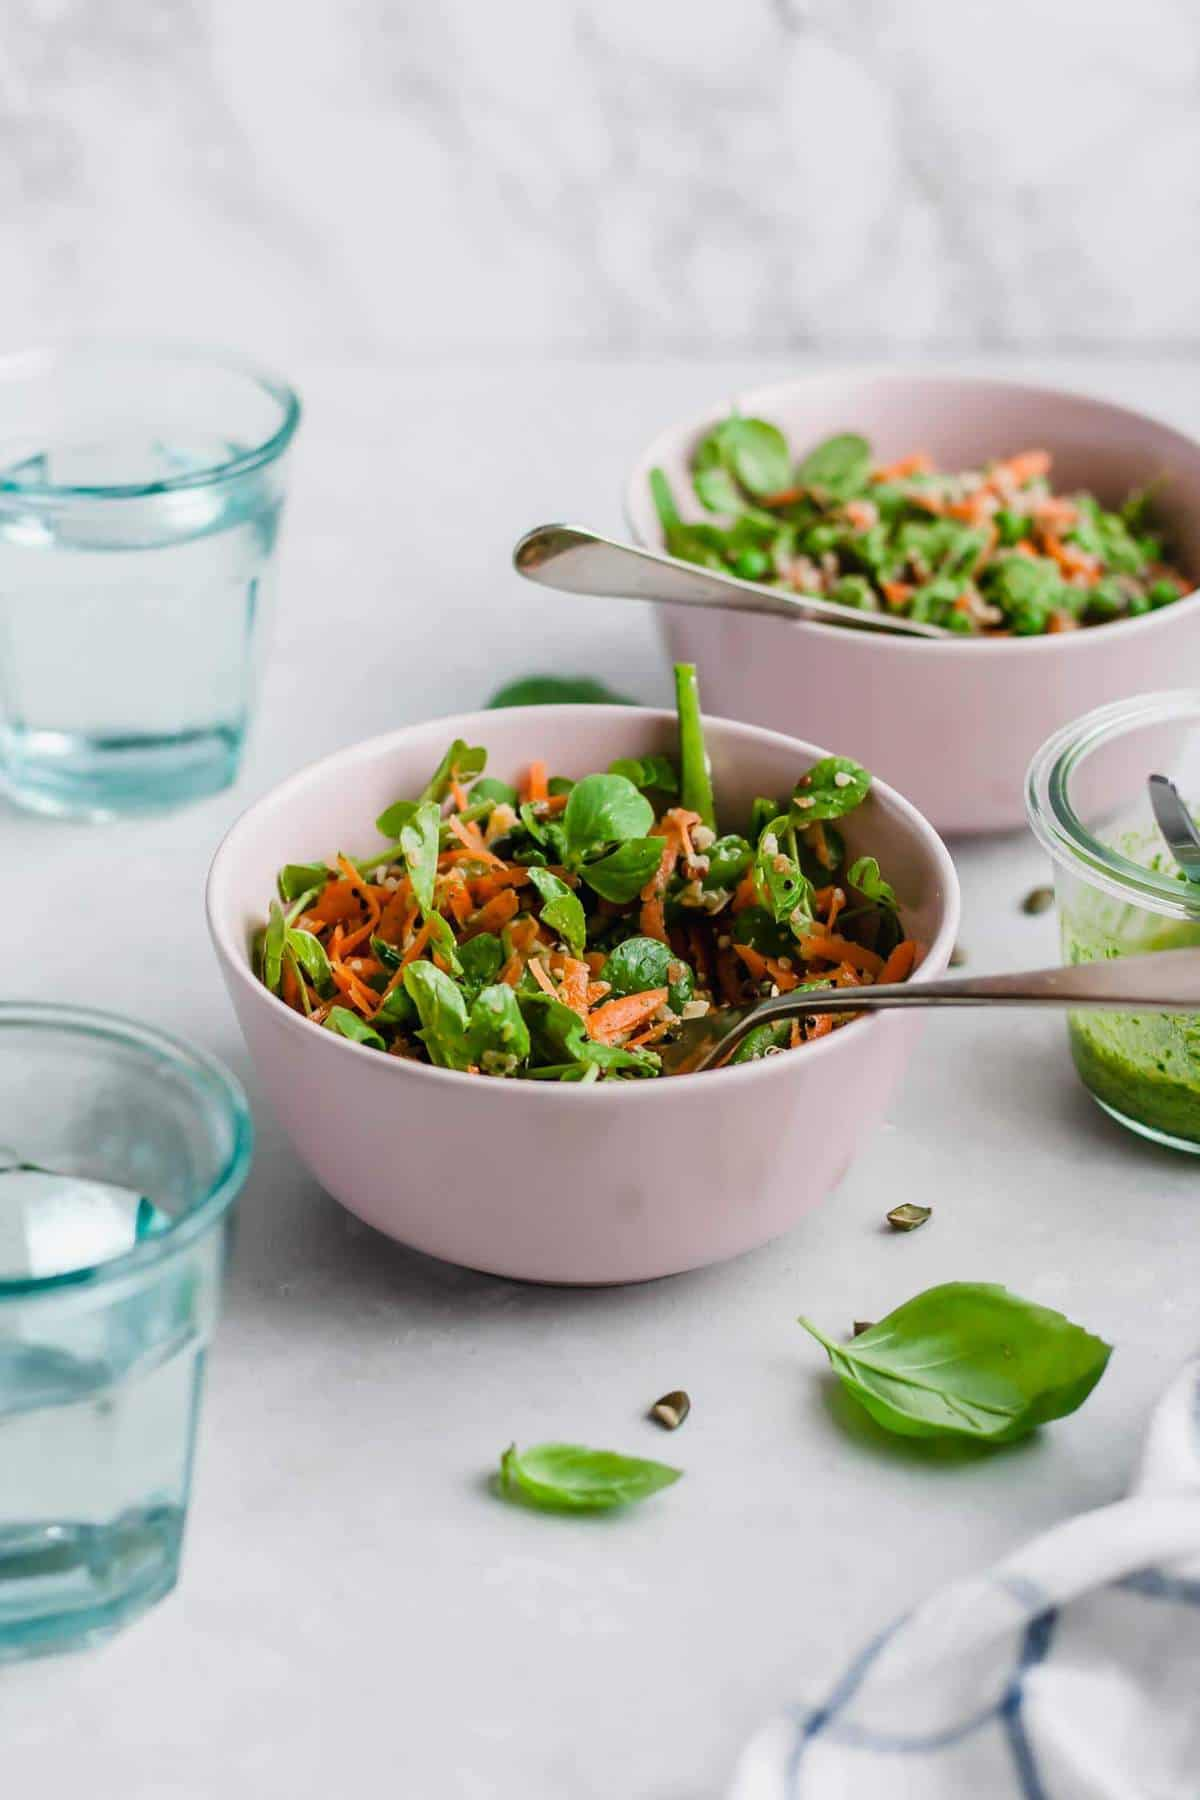 Quinoa Salad with Pesto and Peas